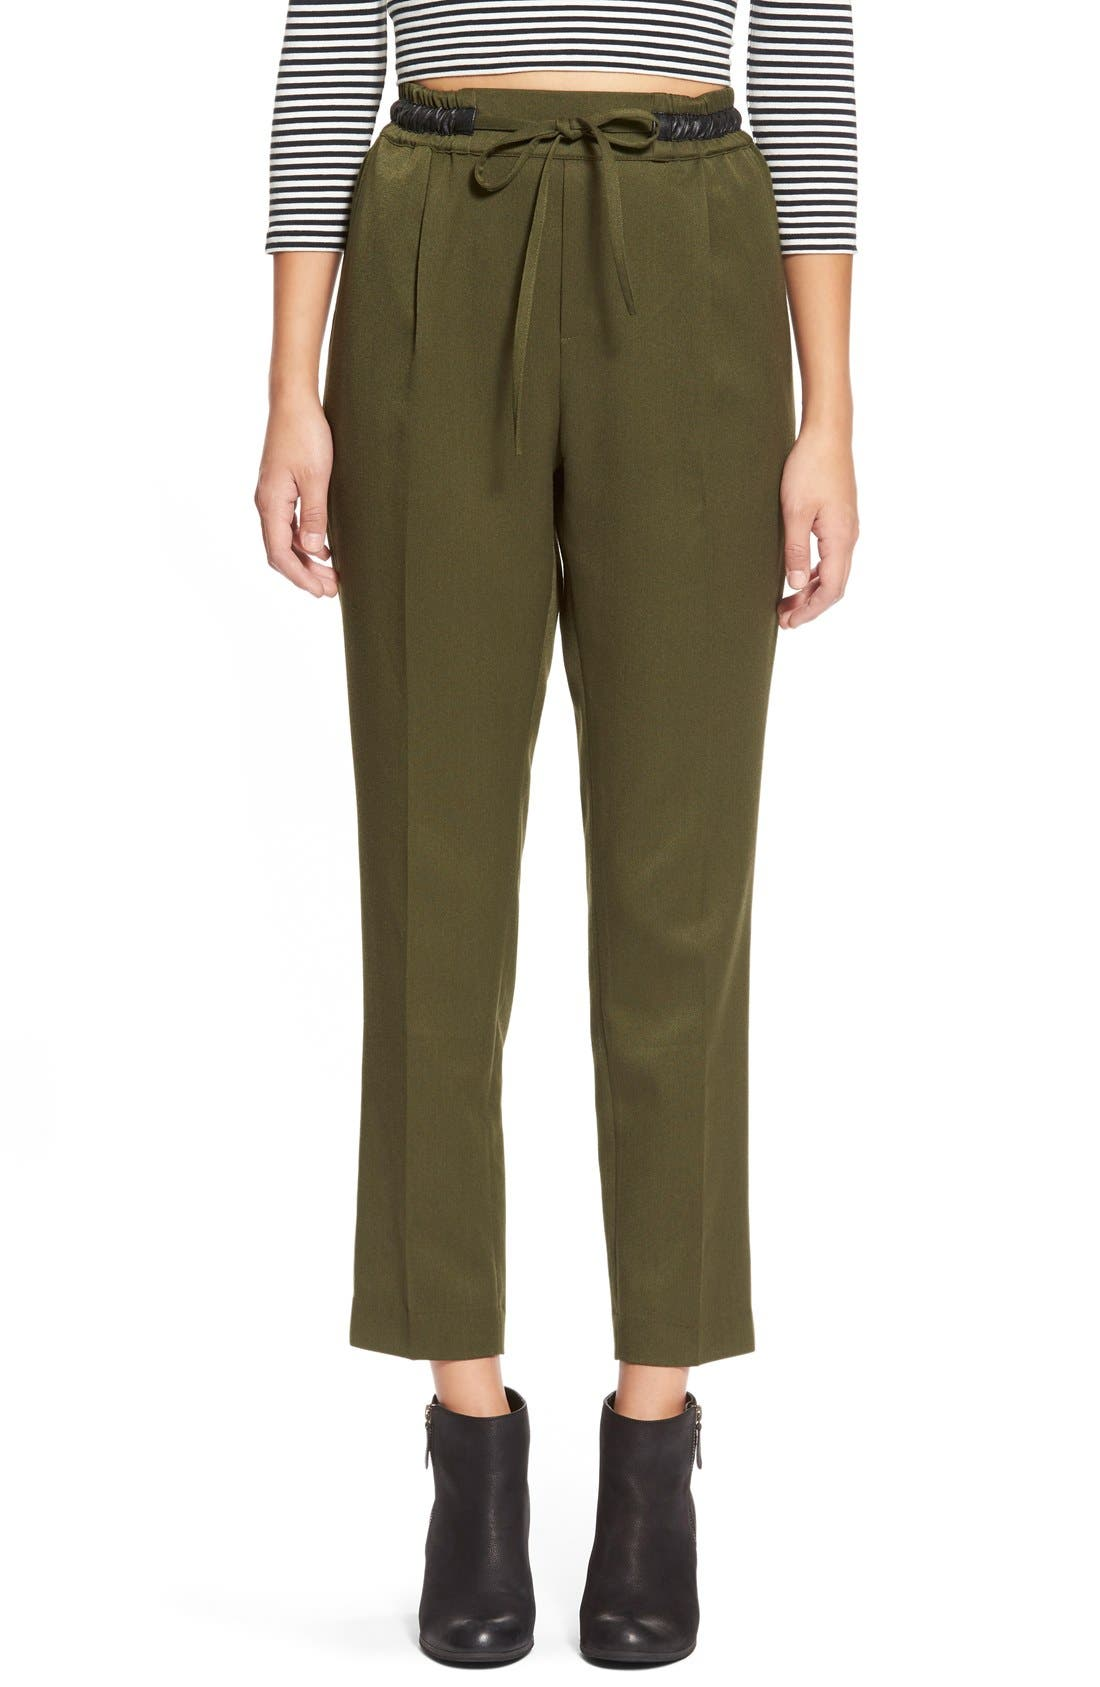 Alternate Image 1 Selected - FlyingTomato Tapered High Rise Pants